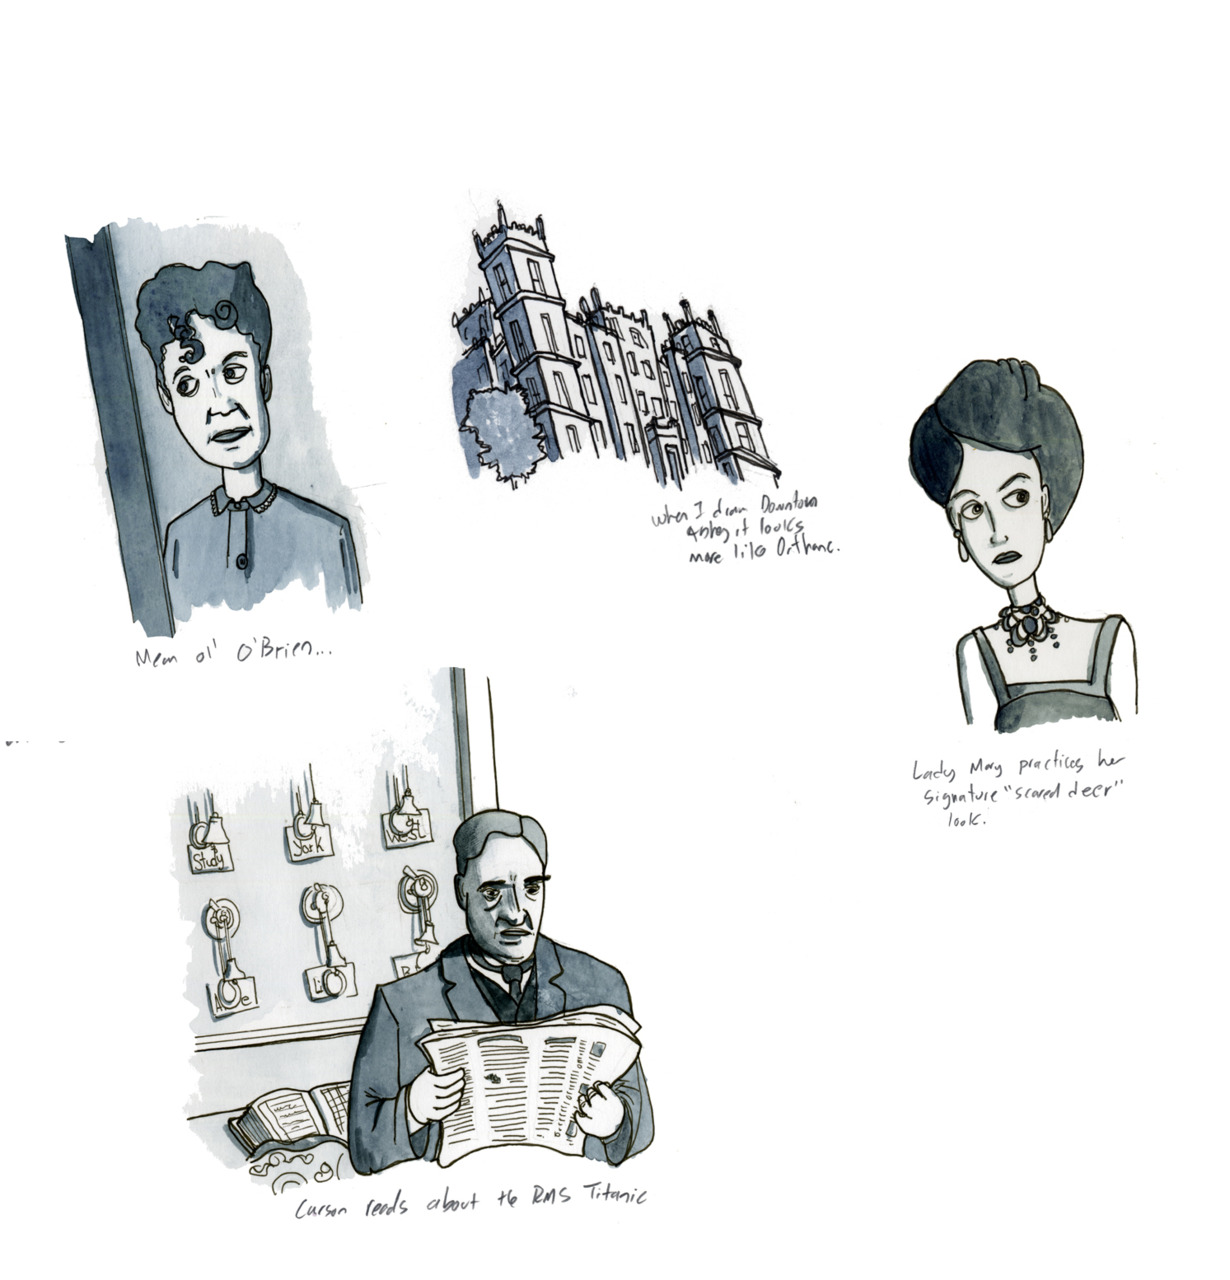 Sketches from my Downton Abbey piece on Meathaus.